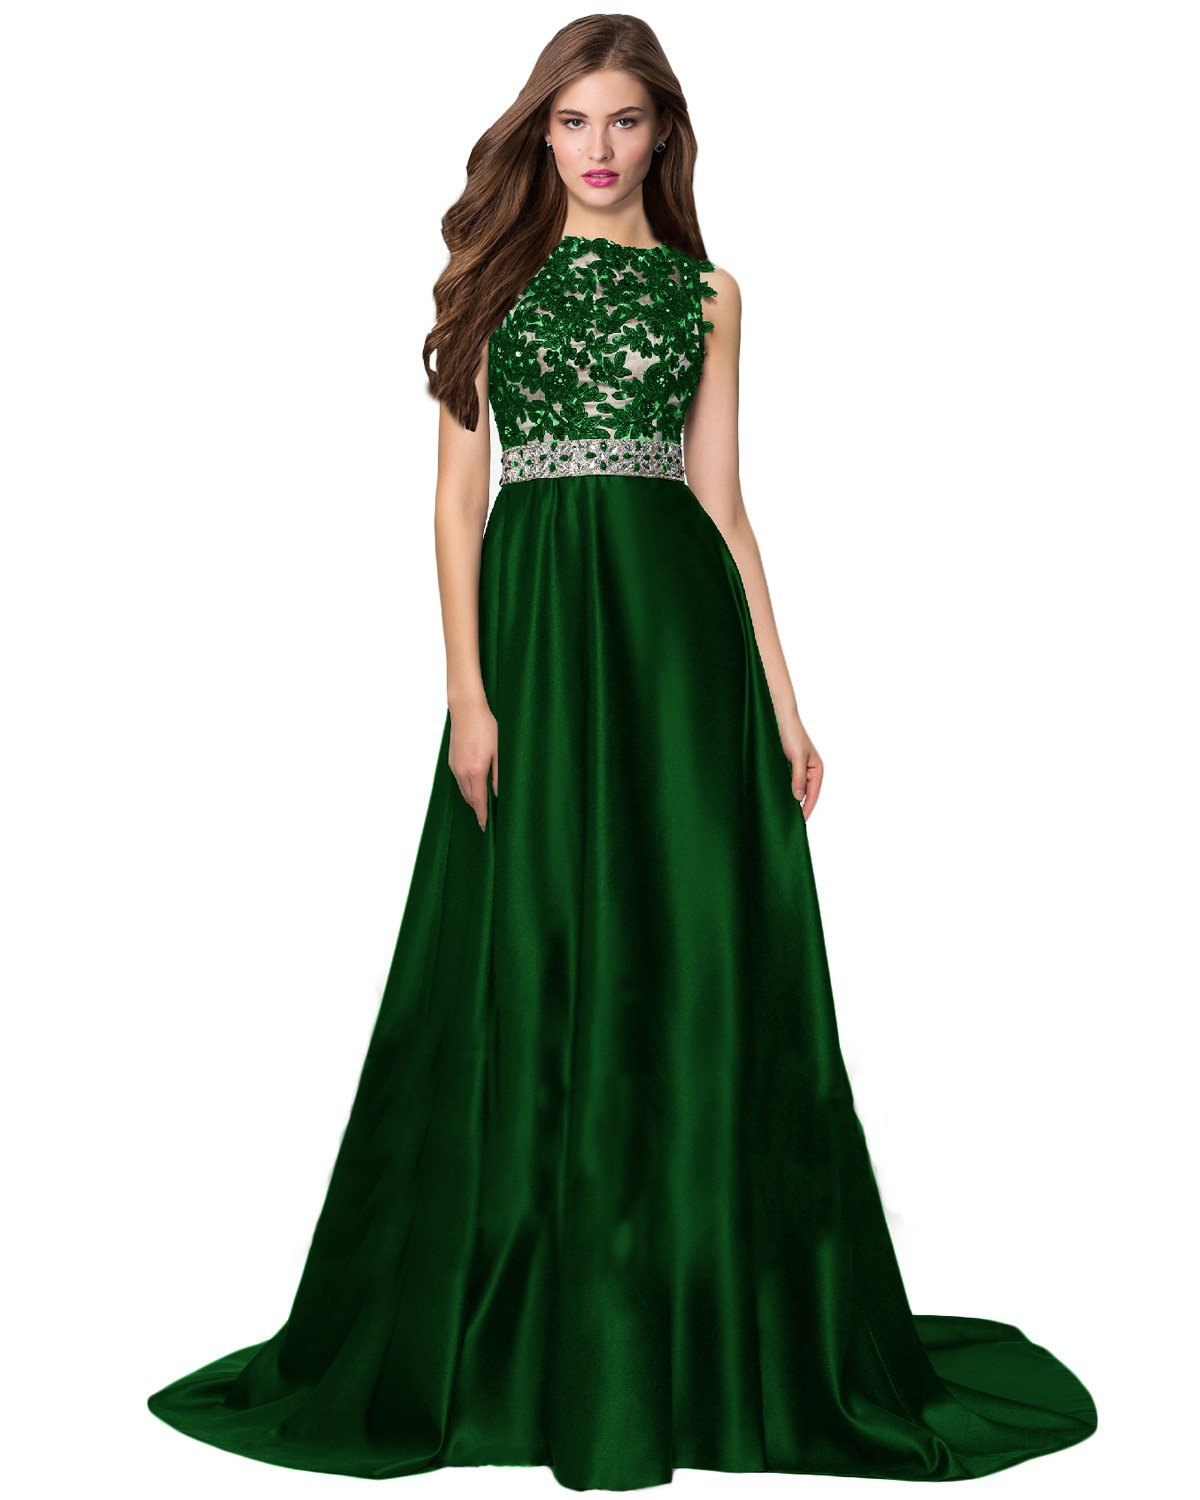 fb7b0a36519 Home Brands Wedding Party Lily Wedding Womens Beaded Satin Prom Dress 2019  Long Sleeveless Aline Evening Formal Gown Backless Size 12 Emerald Green.    